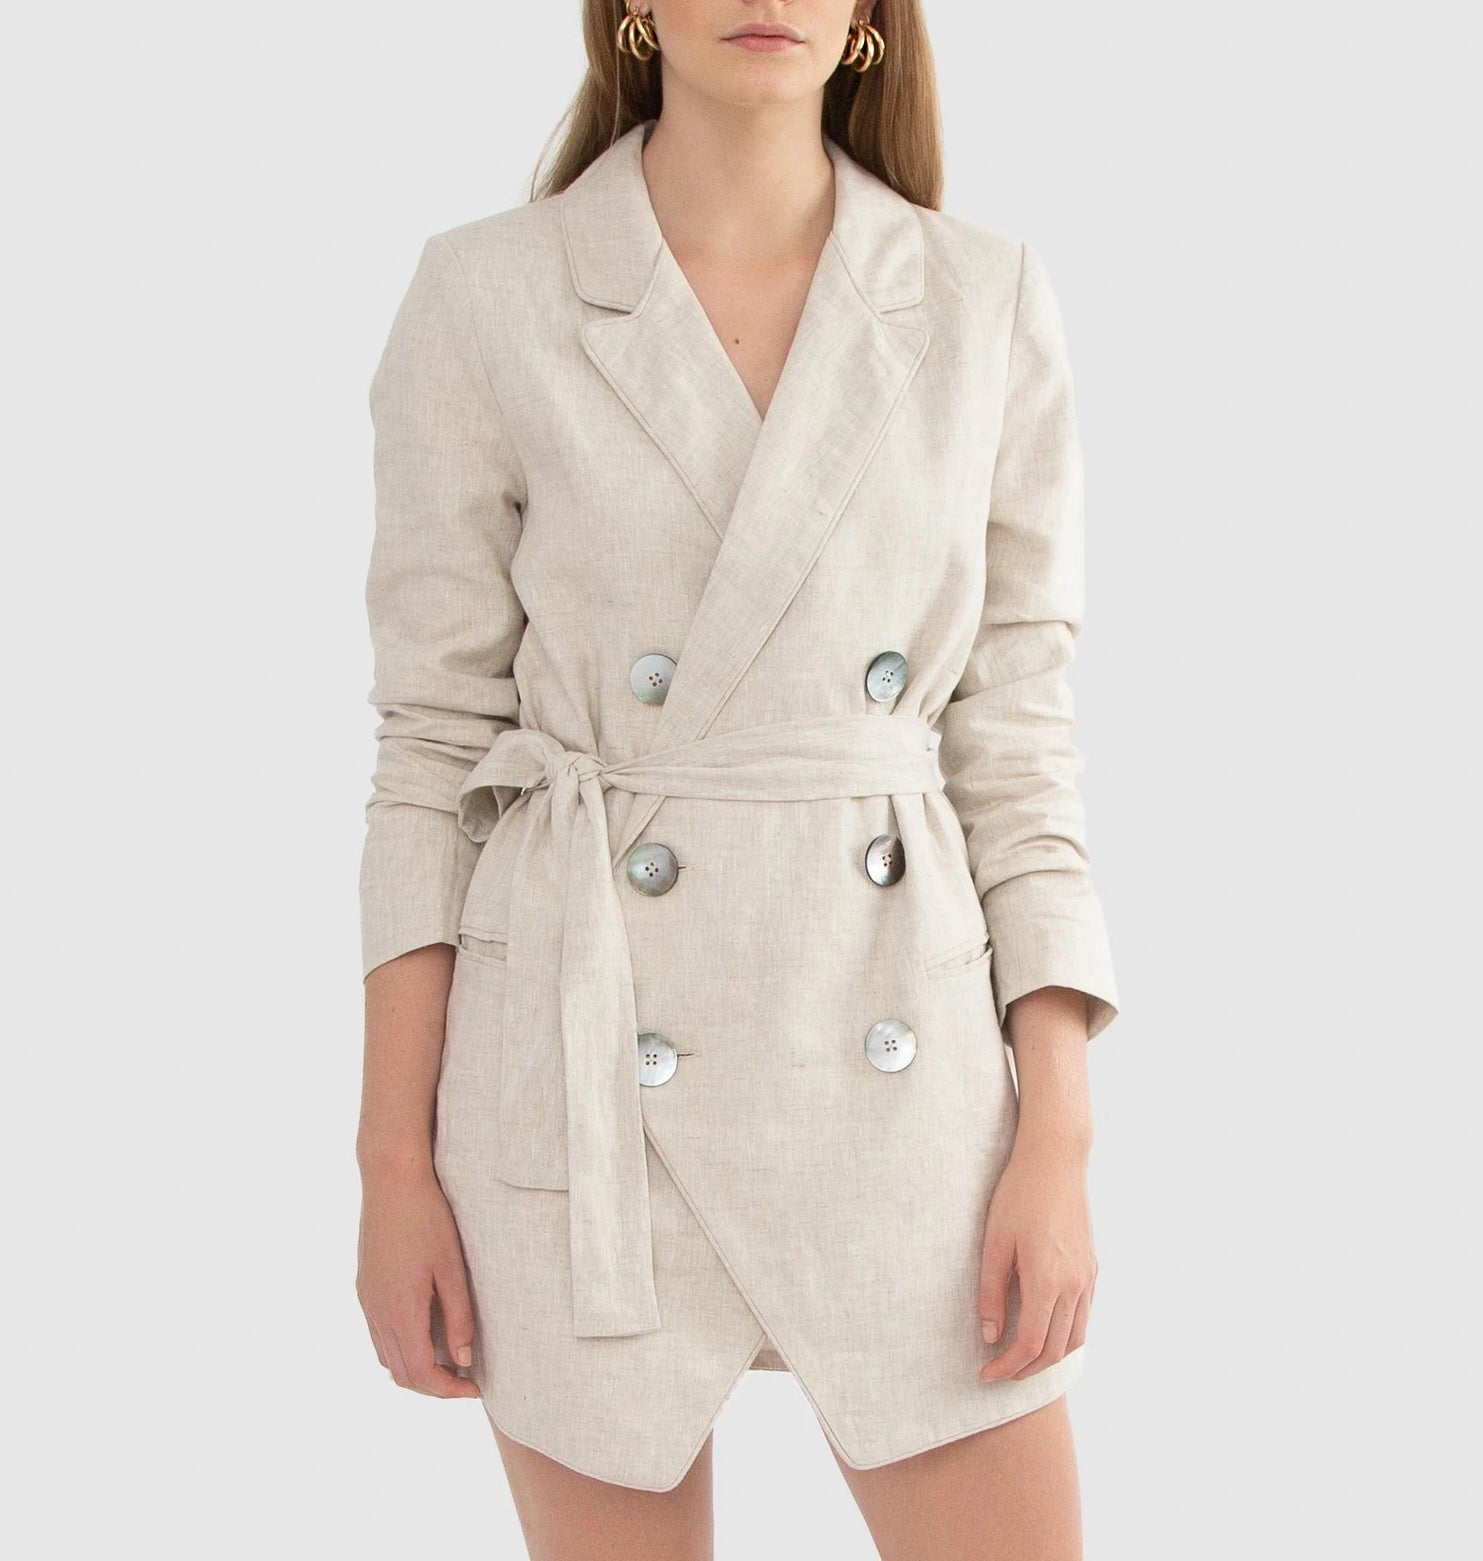 Joelle Blazer Dress